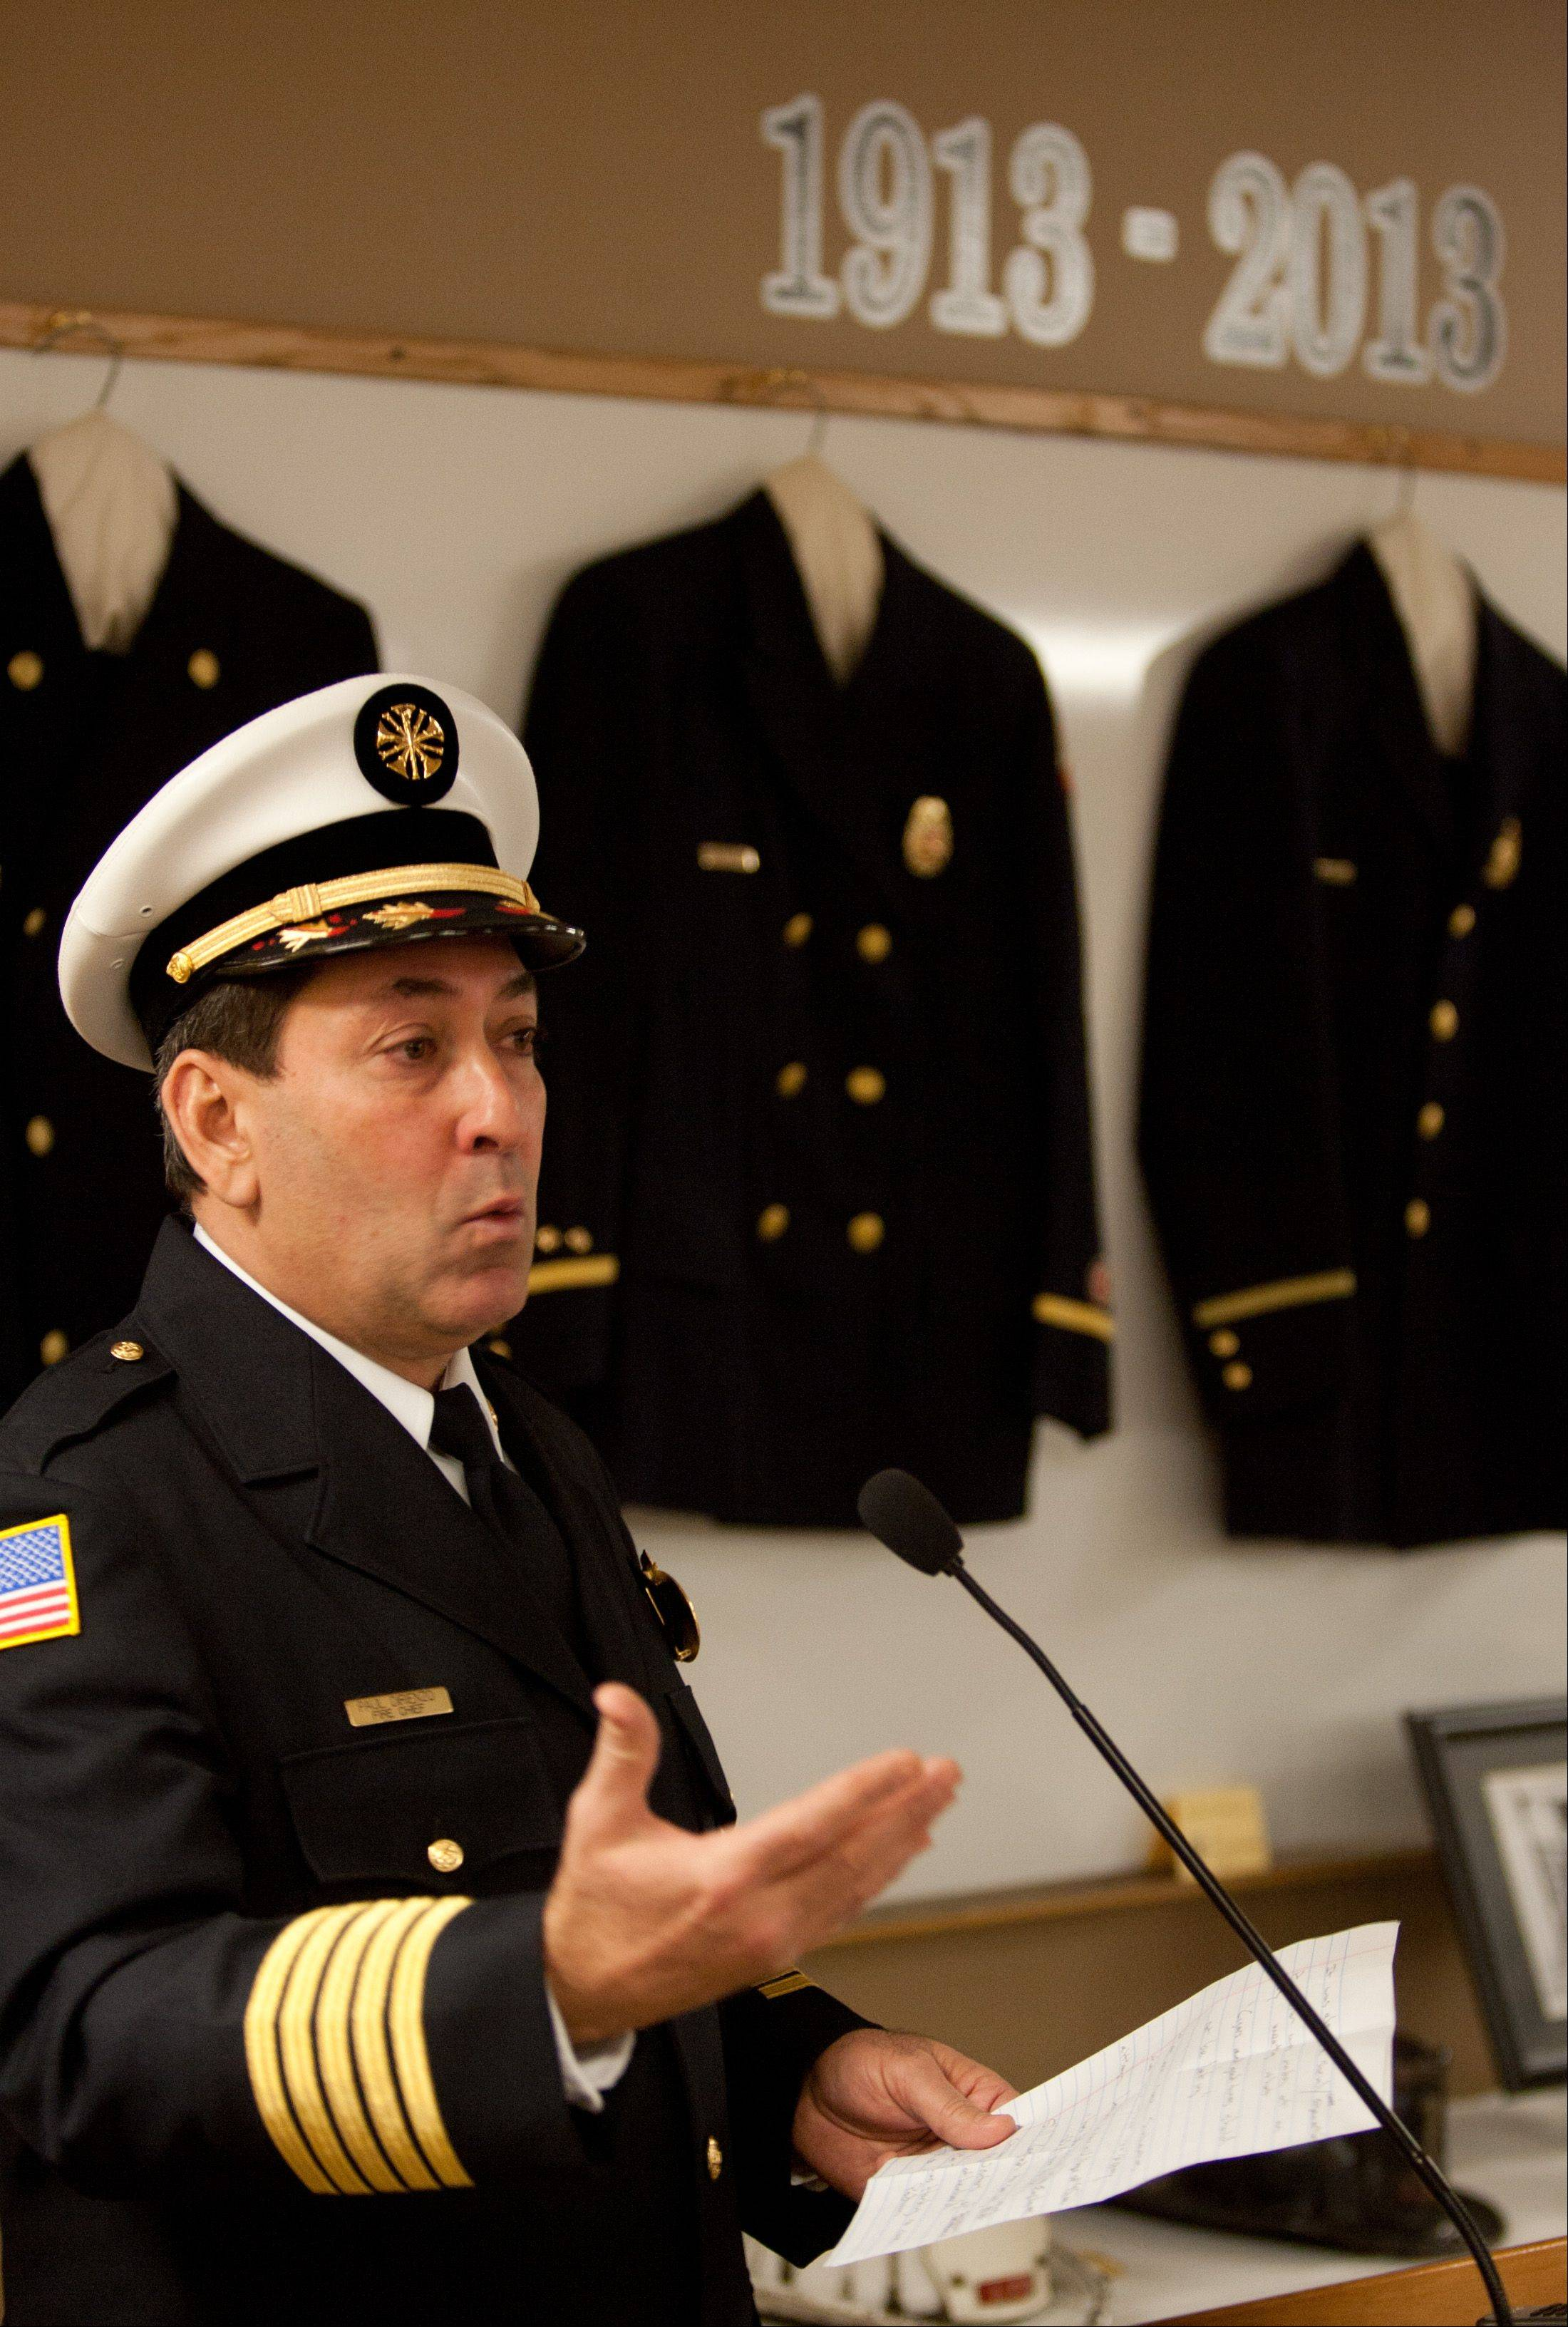 Lombard Fire Chief Paul DiRienzo welcomes a crowd to the department's 100th anniversary celebration Jan. 3 at Station 1.